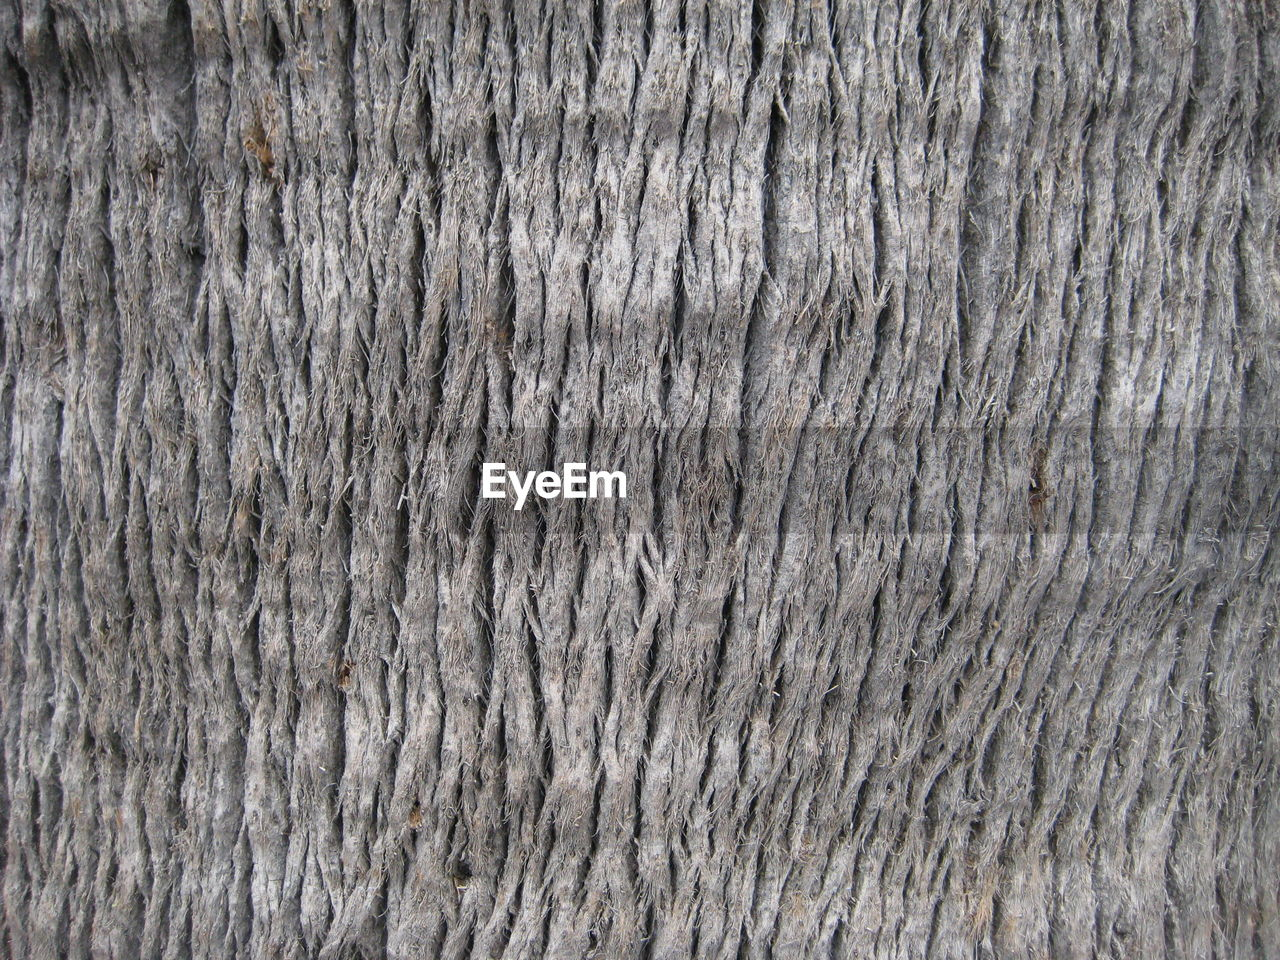 textured, backgrounds, close-up, wood - material, pattern, no people, full frame, gray, textured effect, nature, abstract, wood grain, outdoors, hardwood, day